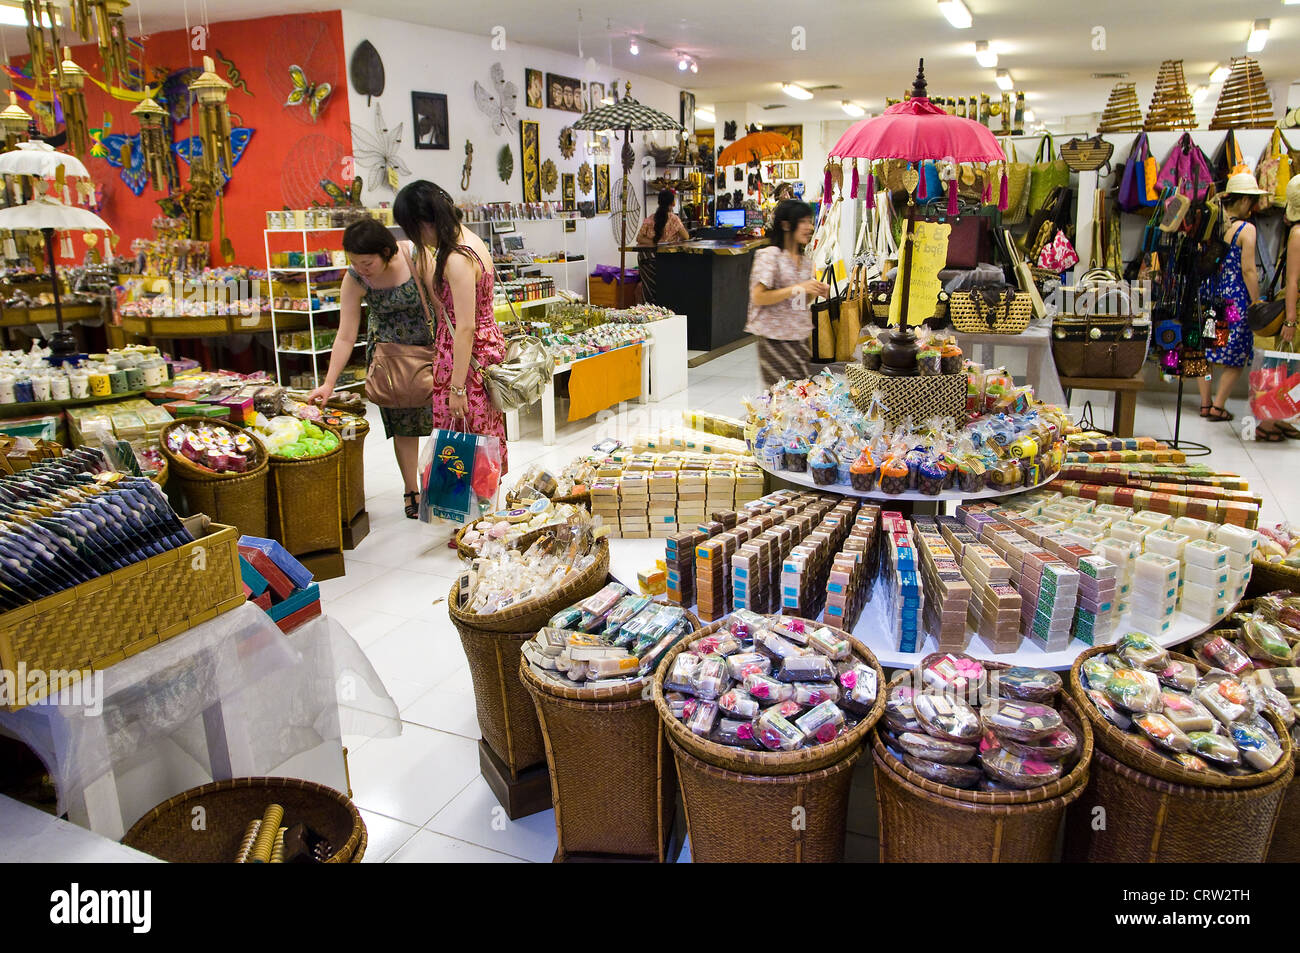 Home Decor Store Interior Centro Mall Kuta Bali Indonesia Stock Photo Royalty Free Image